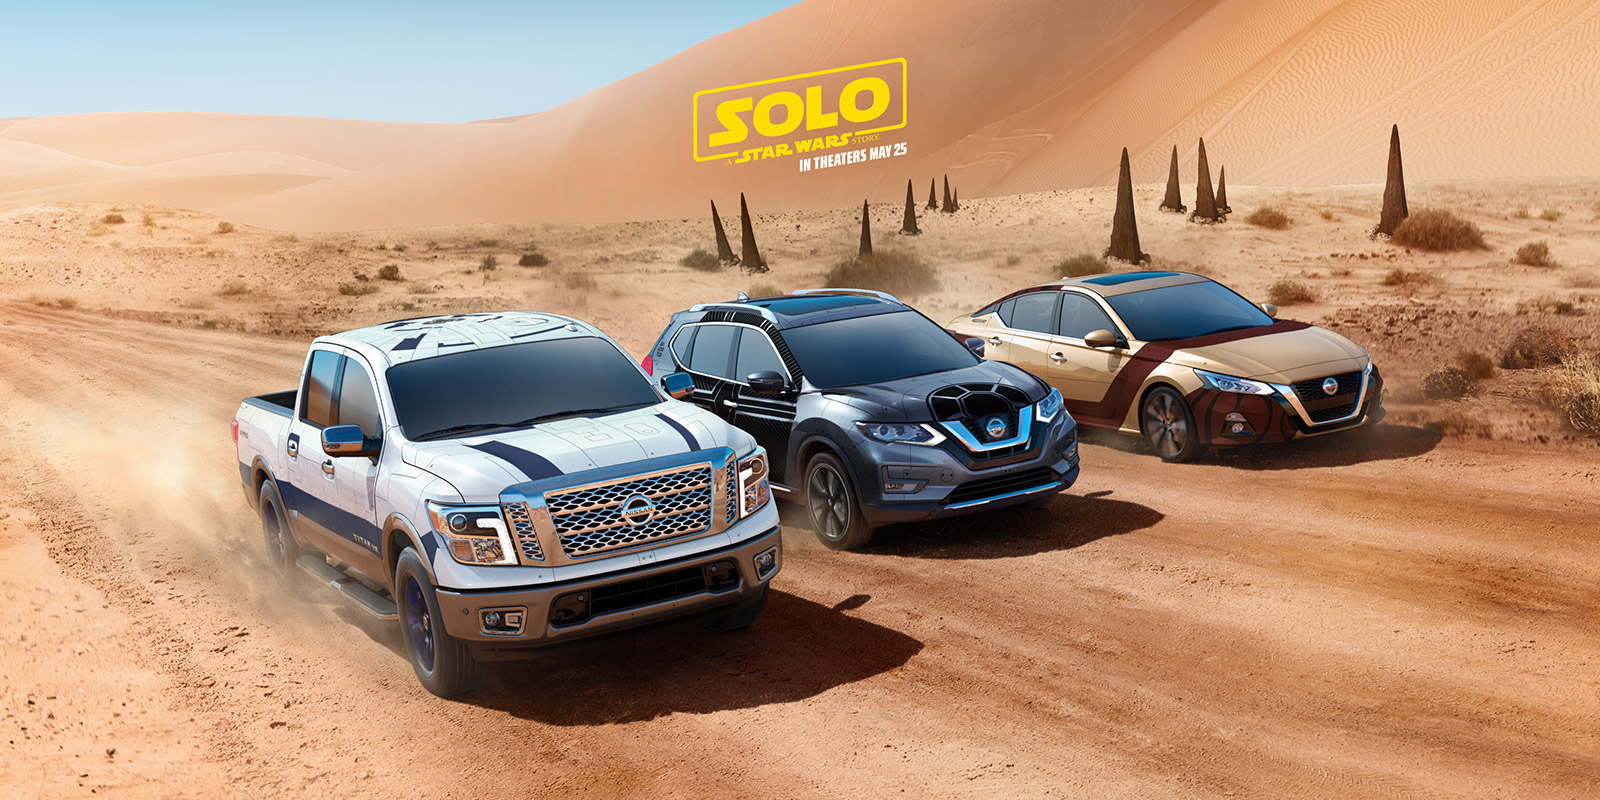 Watch: Nissan launches promotional campaign celebrating the new star wars film